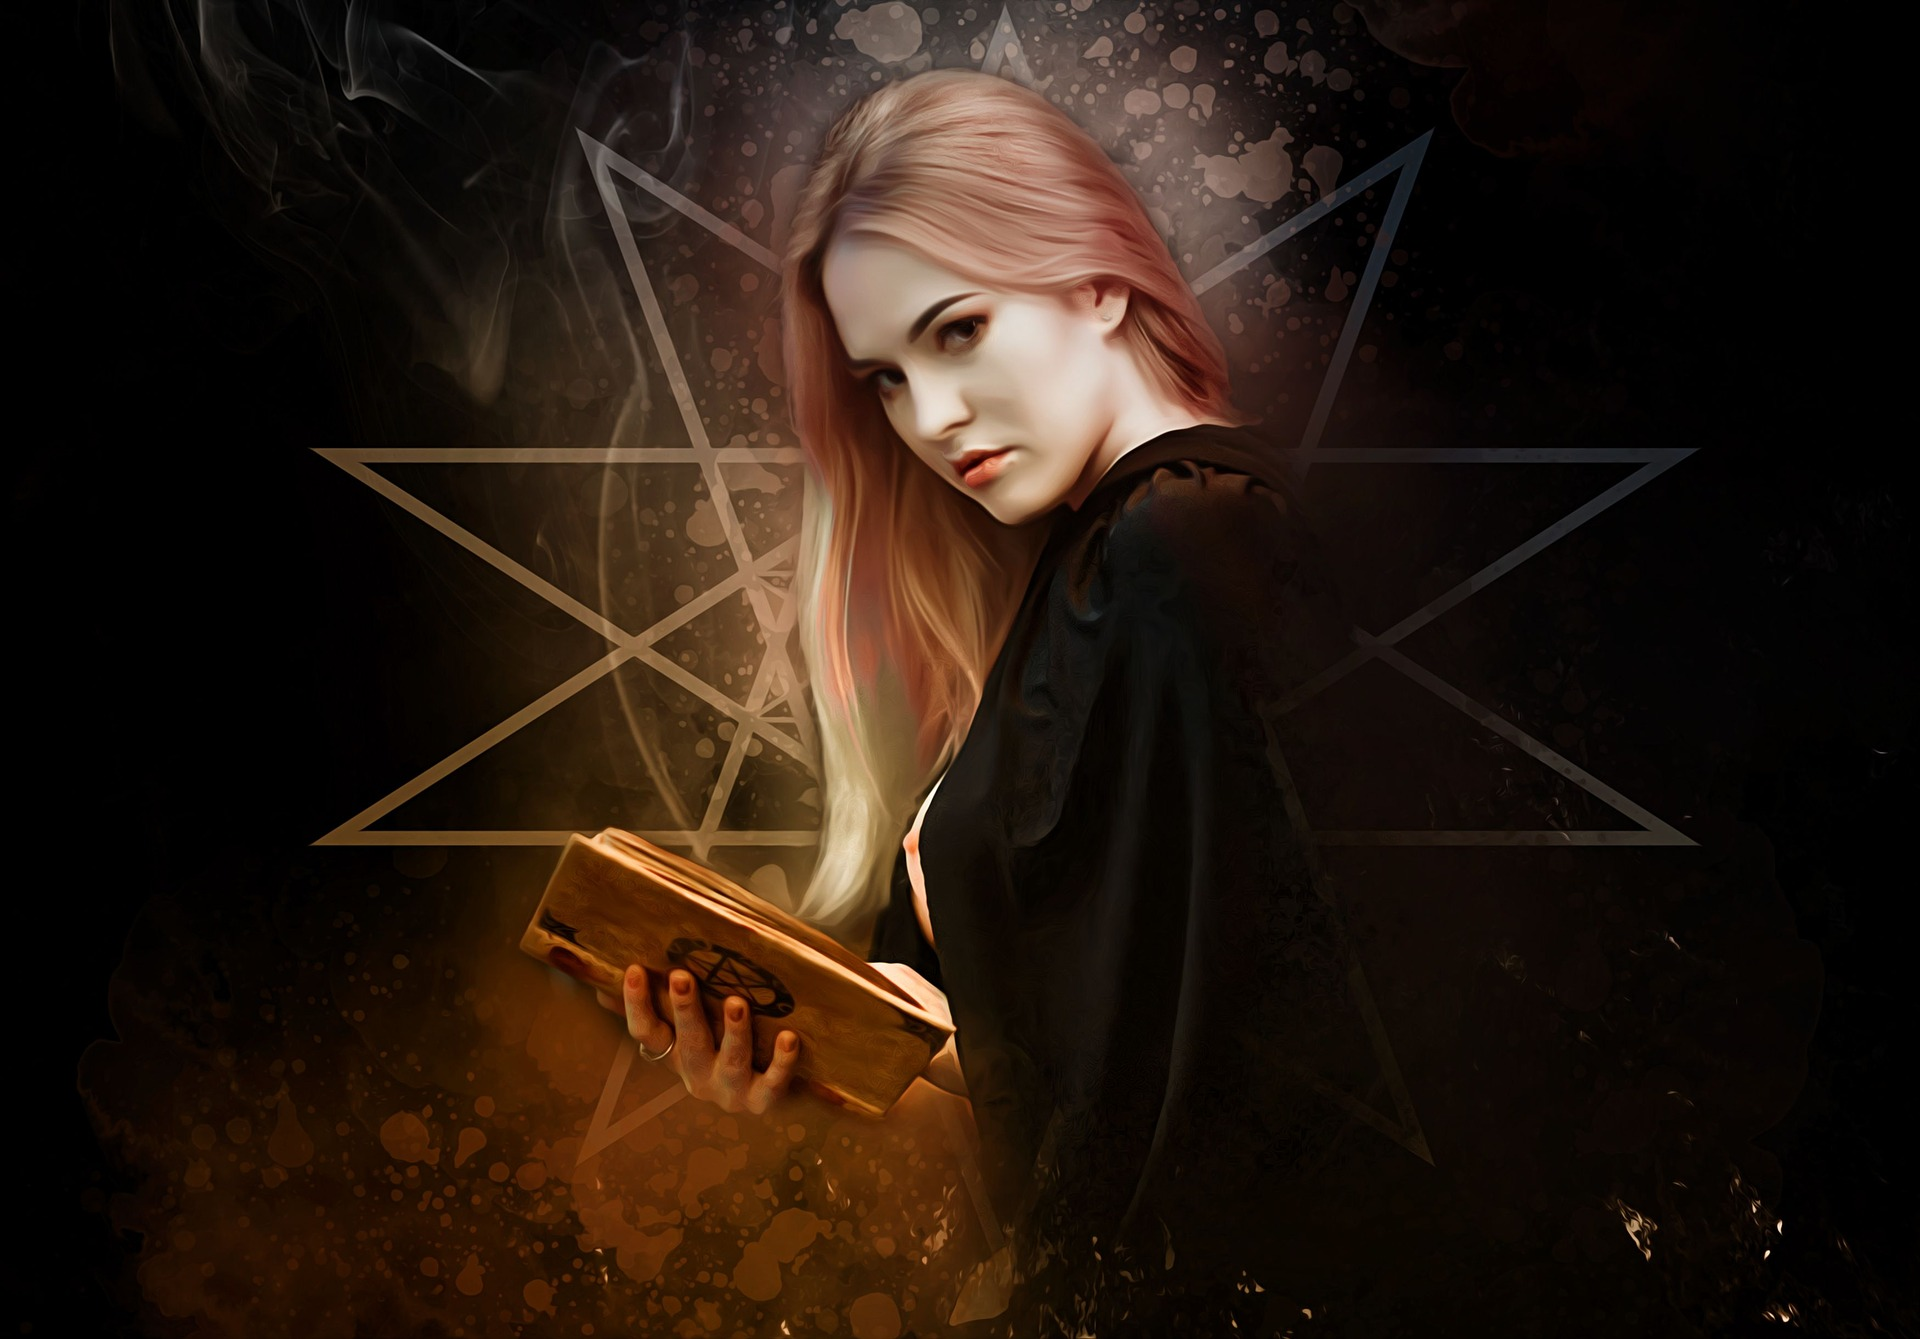 witch holding book in hand performing magic